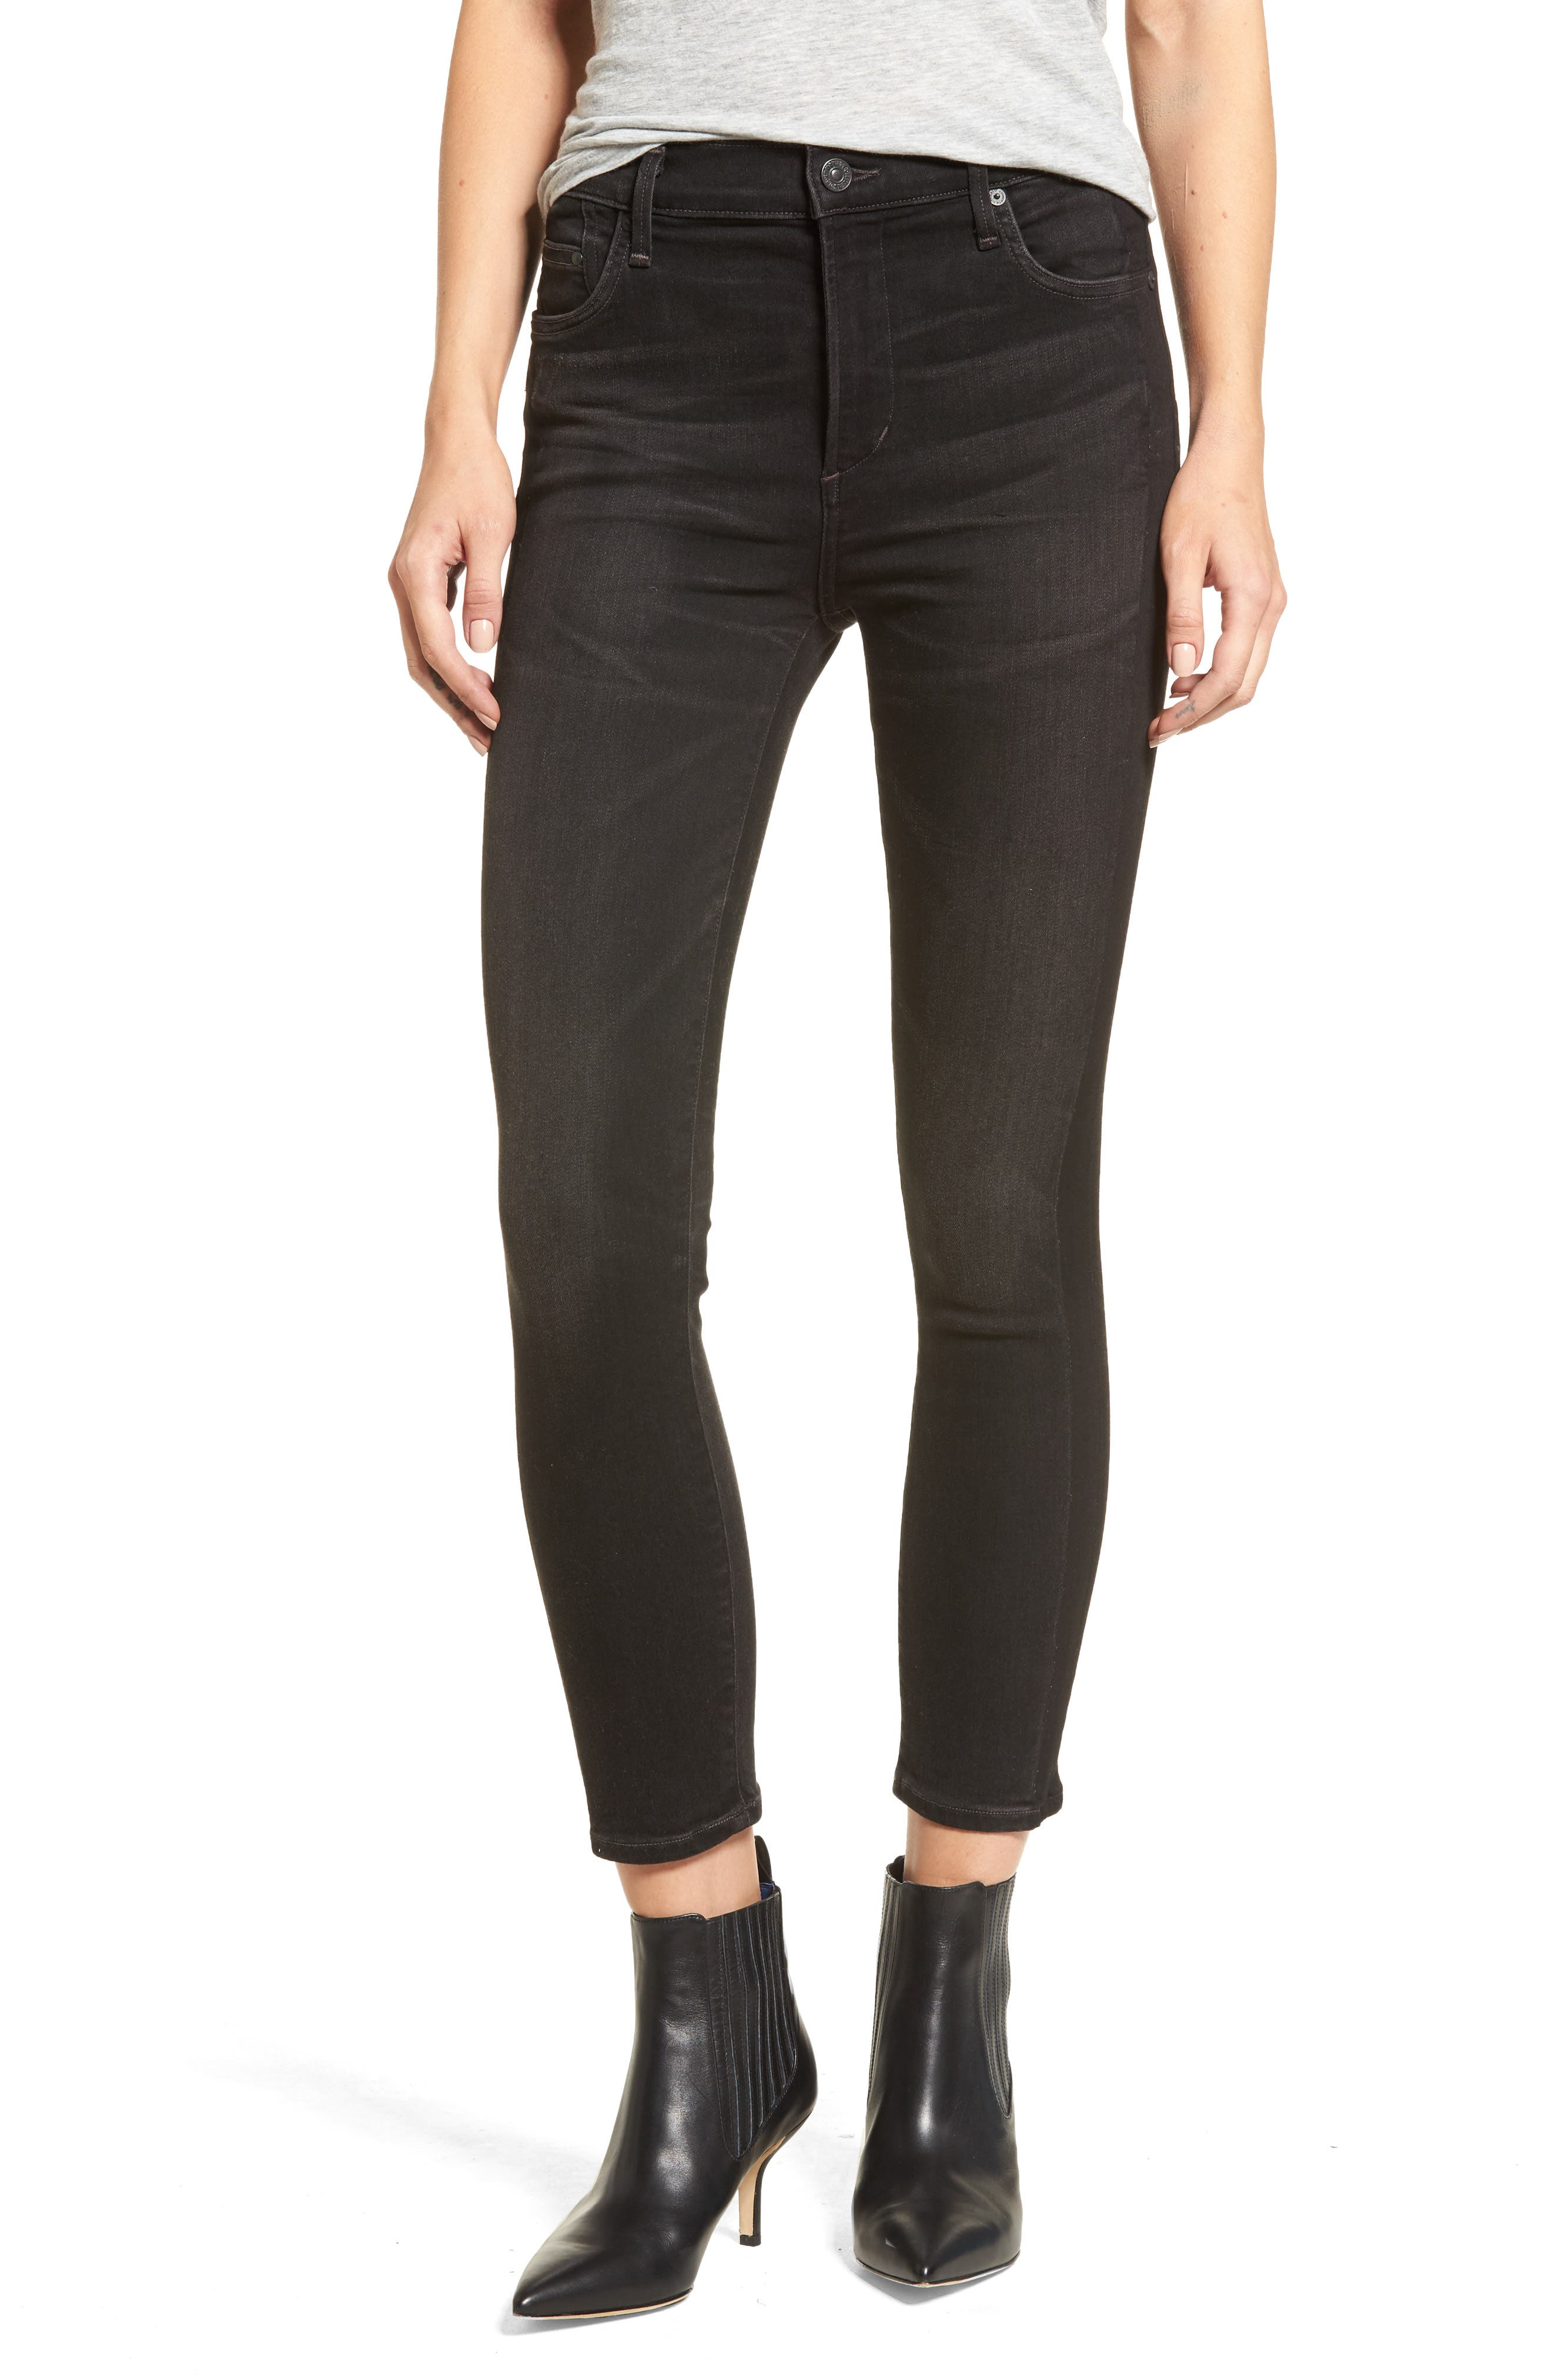 Rocket High Waist Crop Skinny Jeans,                         Main,                         color, Shadow Stripe Darkness